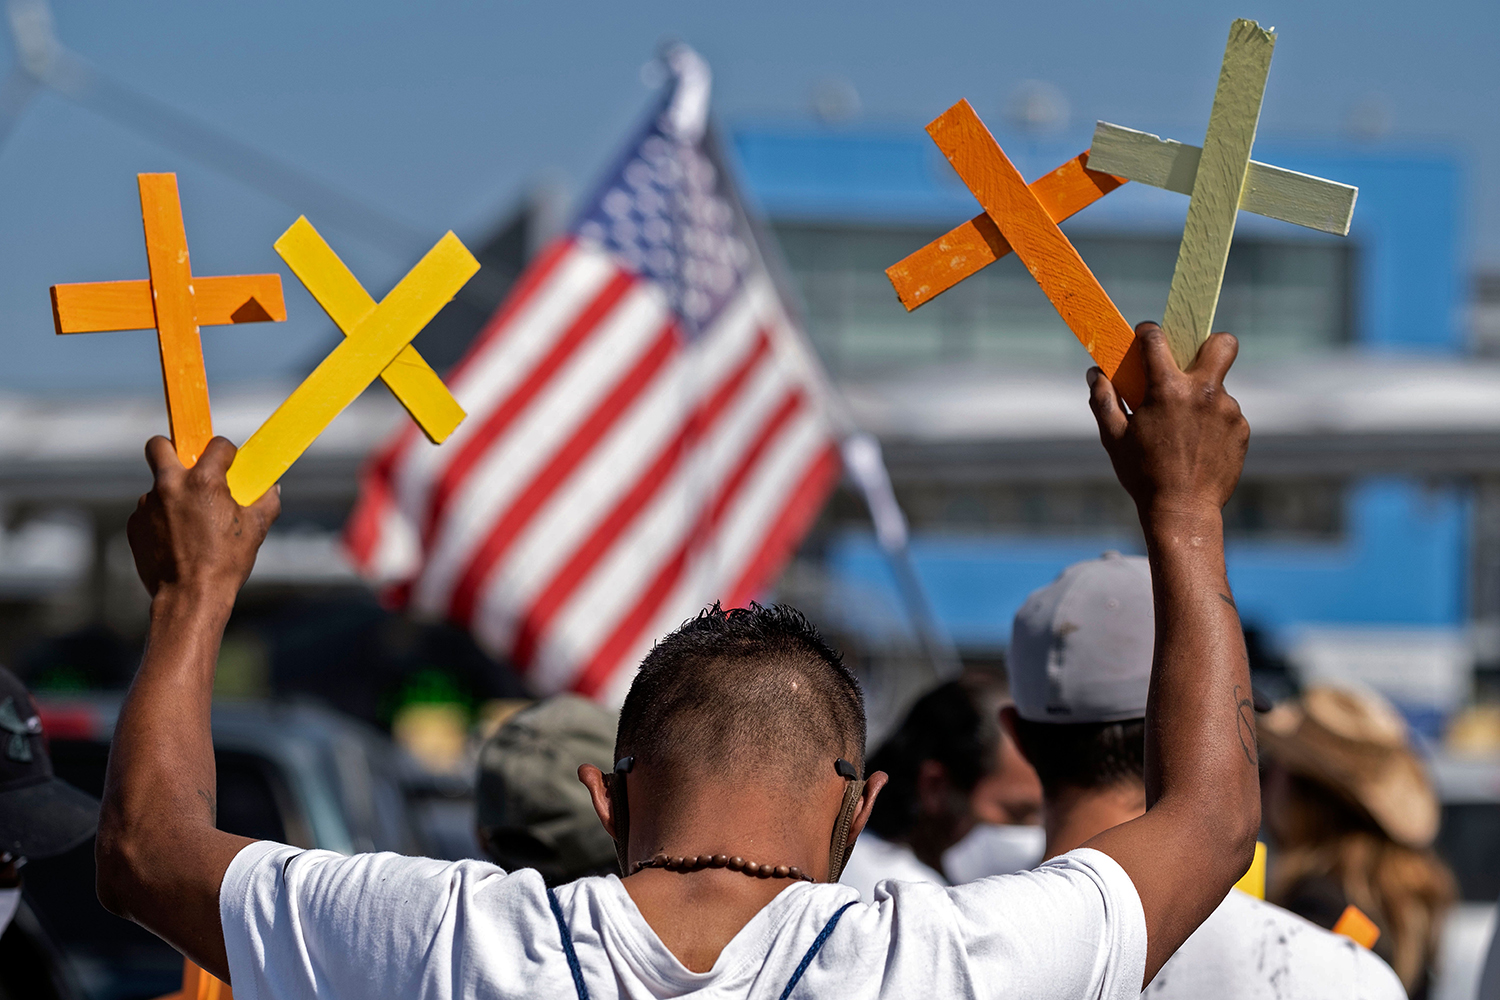 A deported migrant holds up crosses during a demonstration against U.S. President Donald Trump's migration policies at the San Ysidro Port of Entry in Tijuana, Baja California state, Mexico, on July 8. GUILLERMO ARIAS/AFP via Getty Images